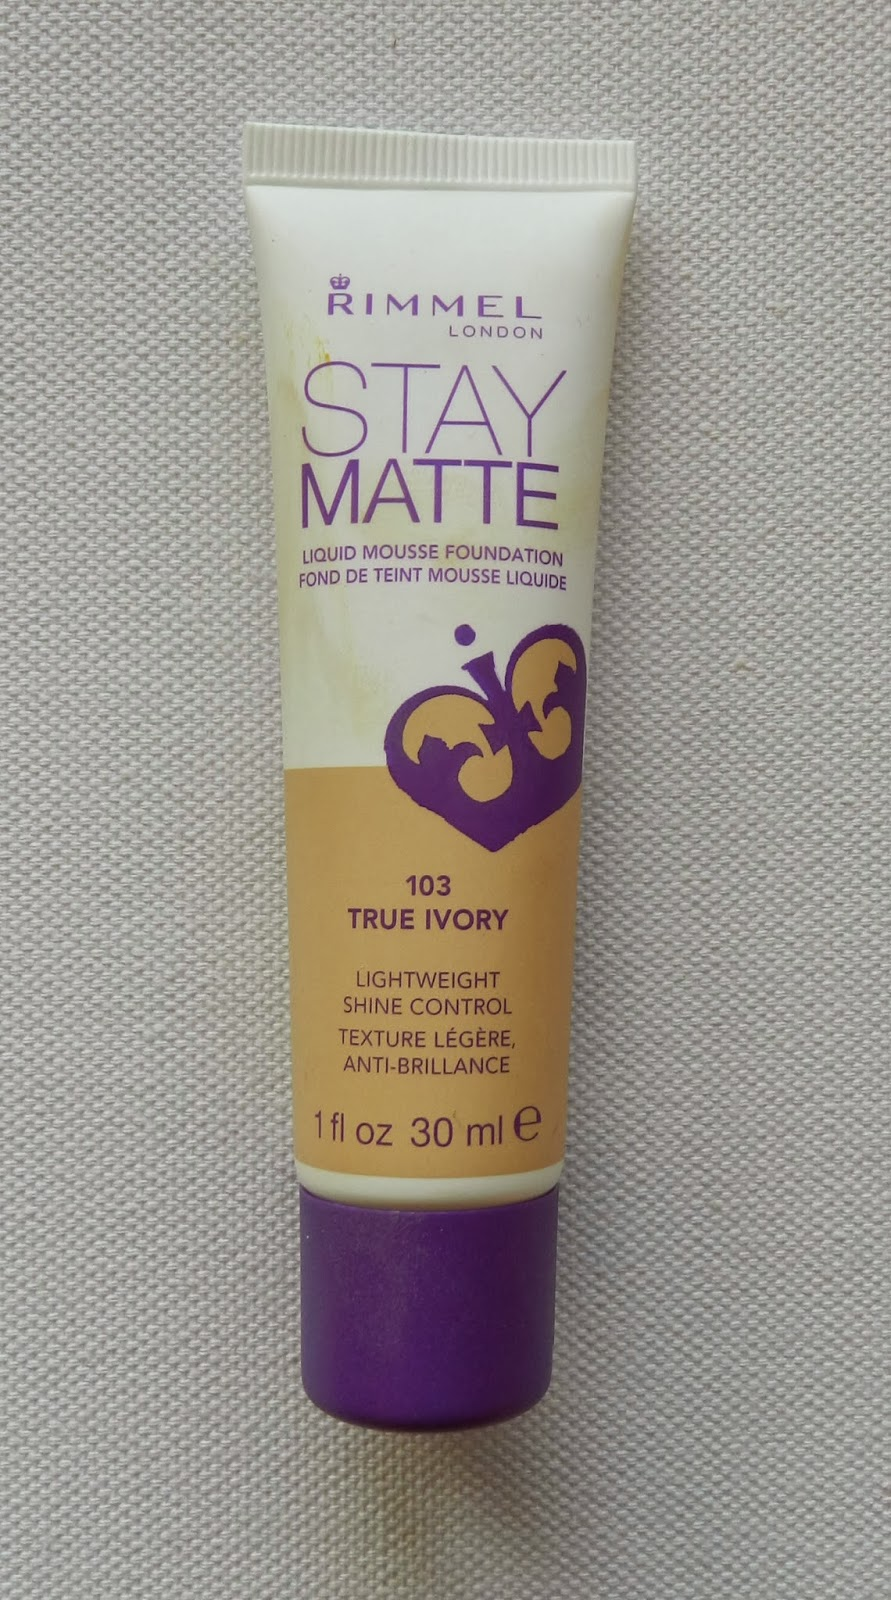 Unfade what fades: Rimmel Stay Matte foundation in #103 ...